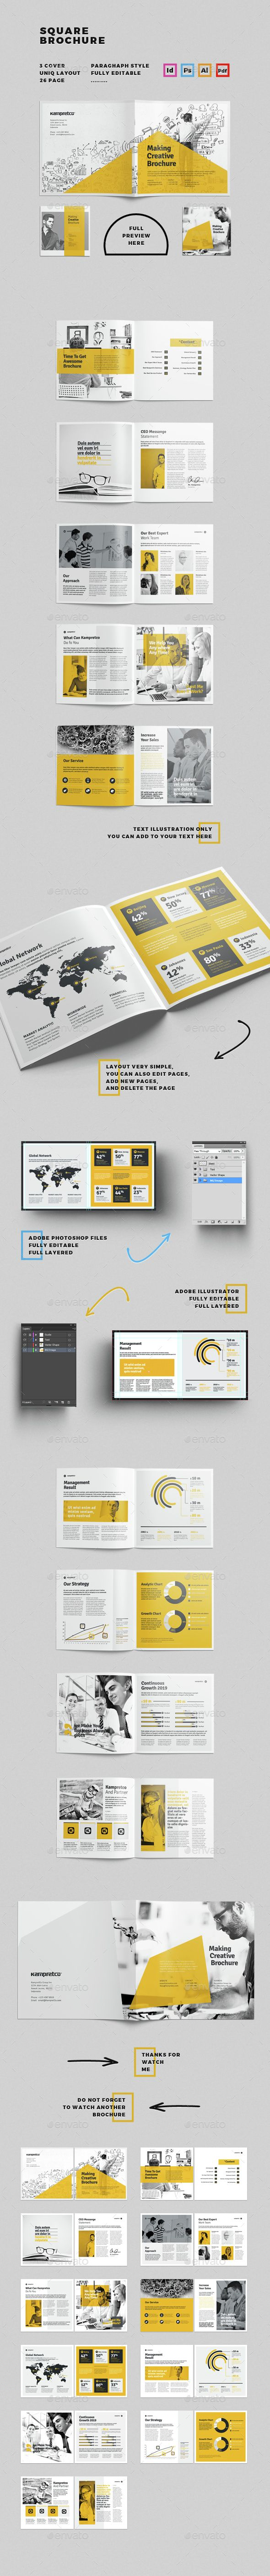 26 Pages Brochure Template PSD, INDD, Vector EPS, AI. Download here: http://graphicriver.net/item/brochure/15293602?ref=ksioks